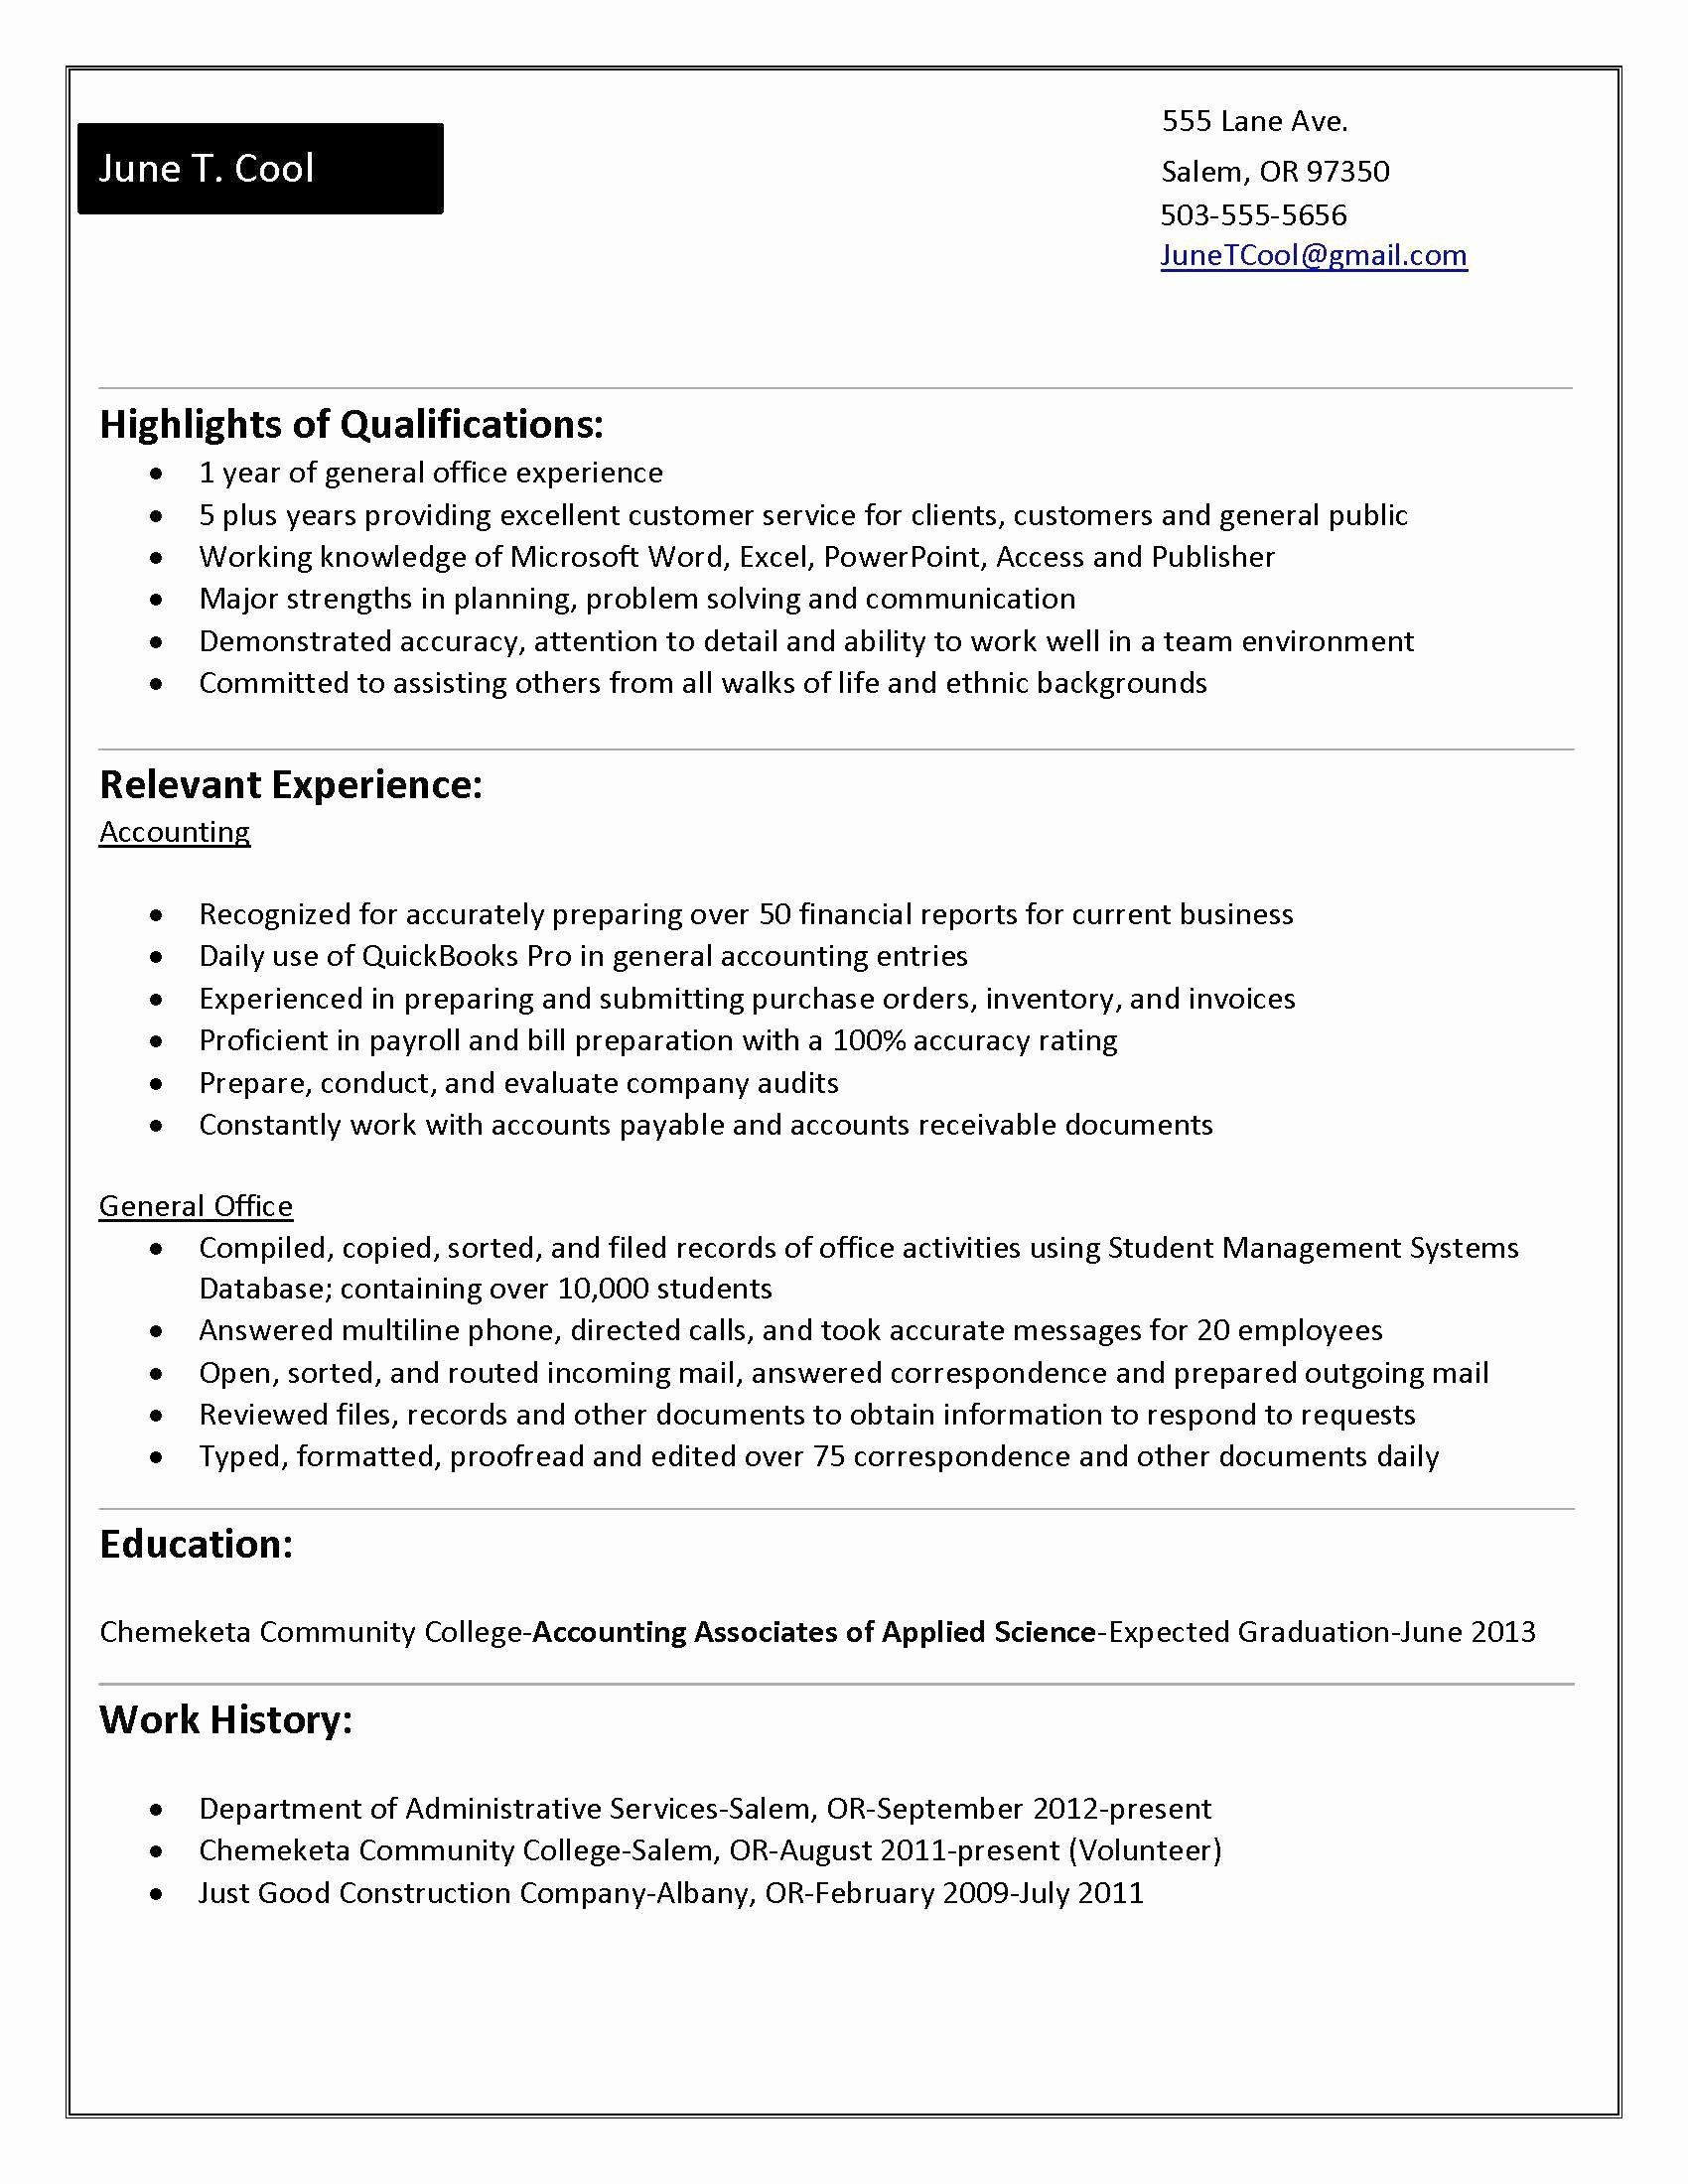 Resume For Accounting Internship With No Experience Printable Resume Template Student Resume Template Student Resume Internship Resume